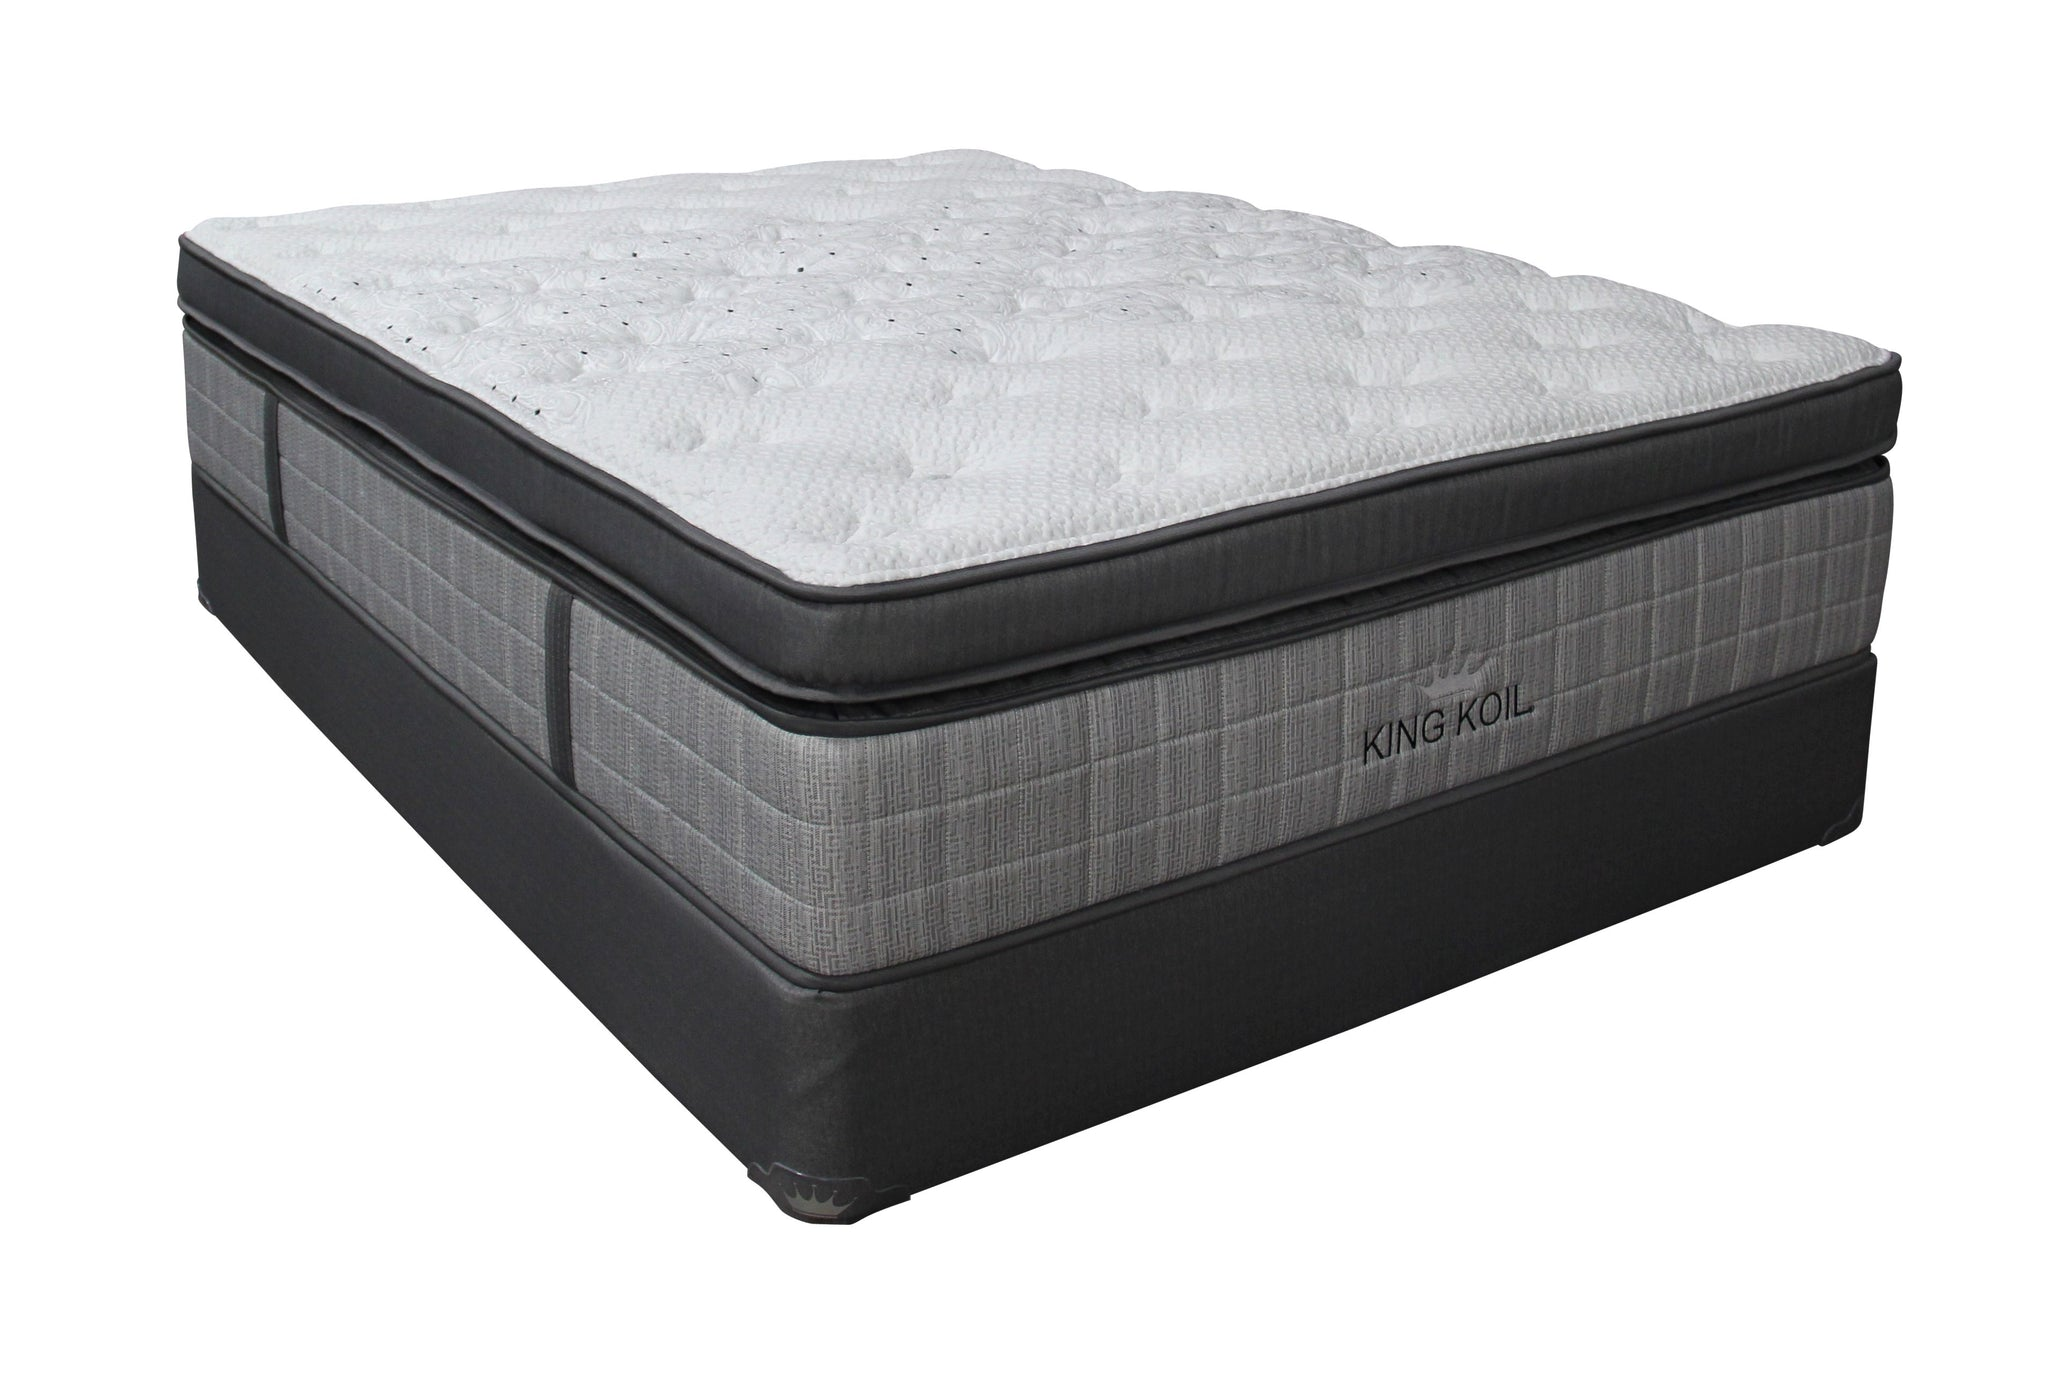 inch gel cover innovations foam topper product memory sleep mattress with toppers nav pillow